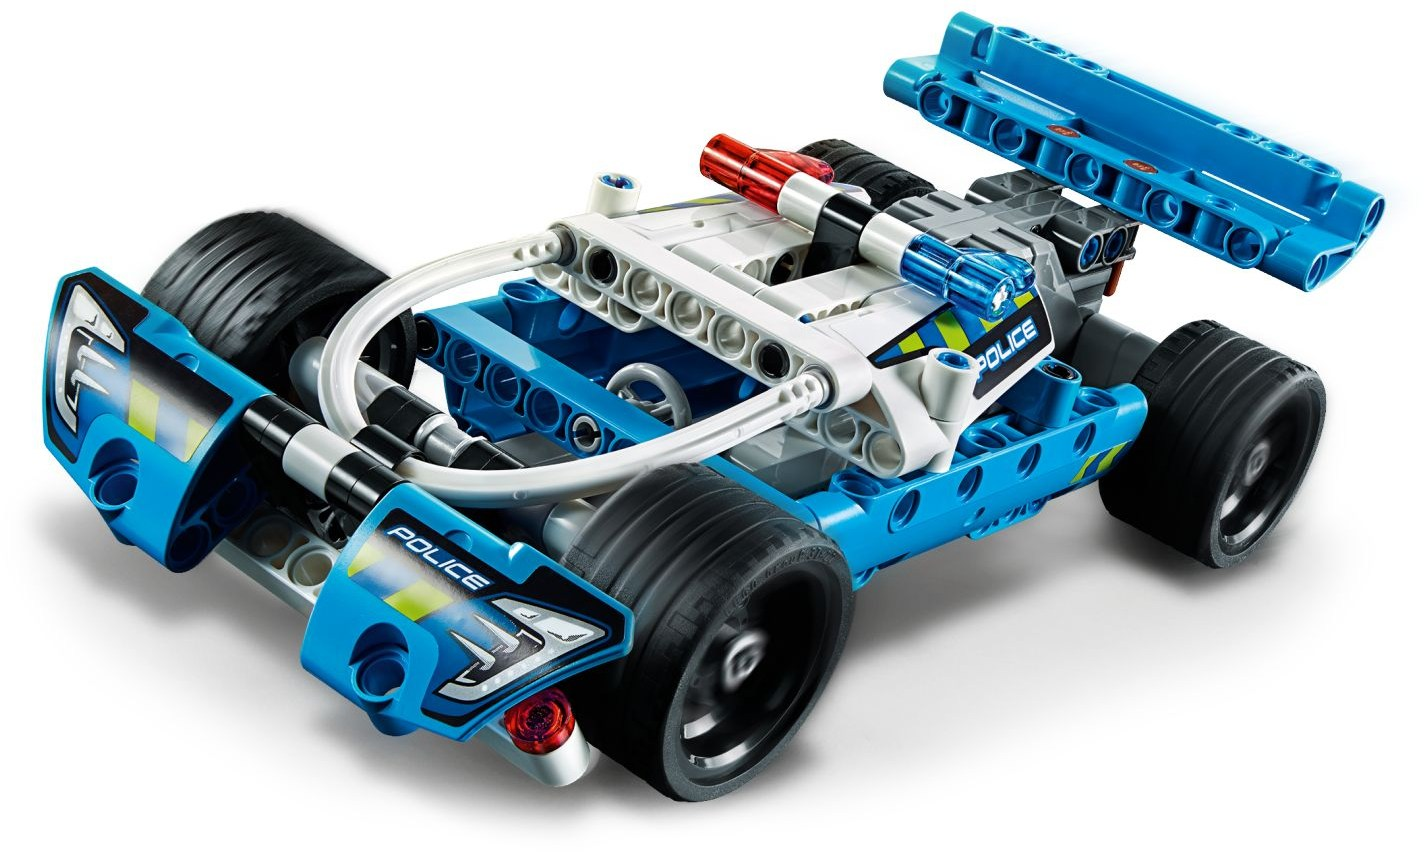 LEGO - Technic - Police Pursuit Pull Back Vehicle Building Set (42091)